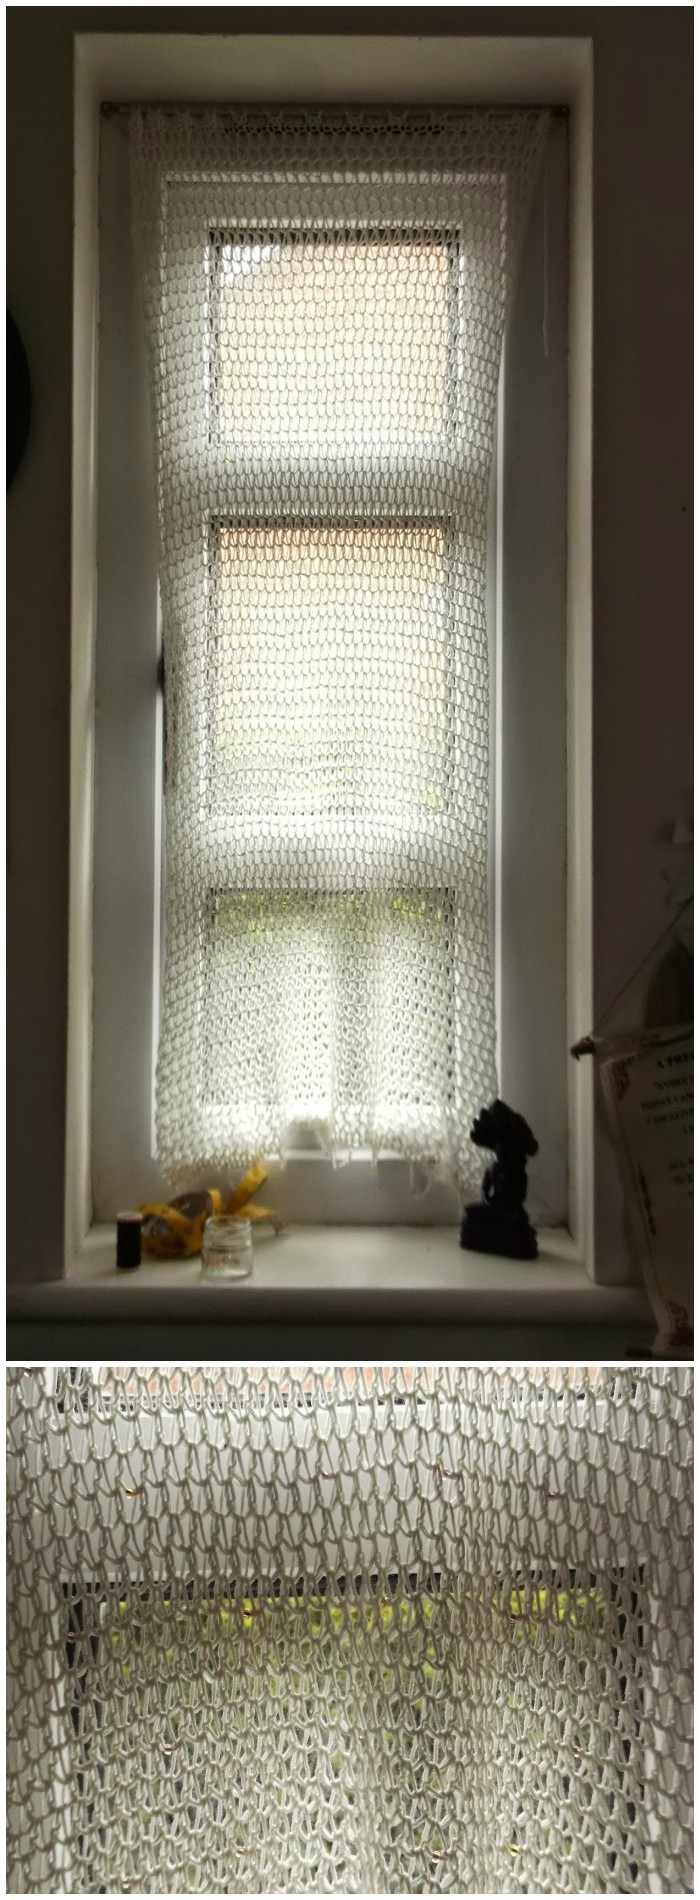 Beaded Net Curtains Free Crochet Curtain Patterns For Your Home Decor